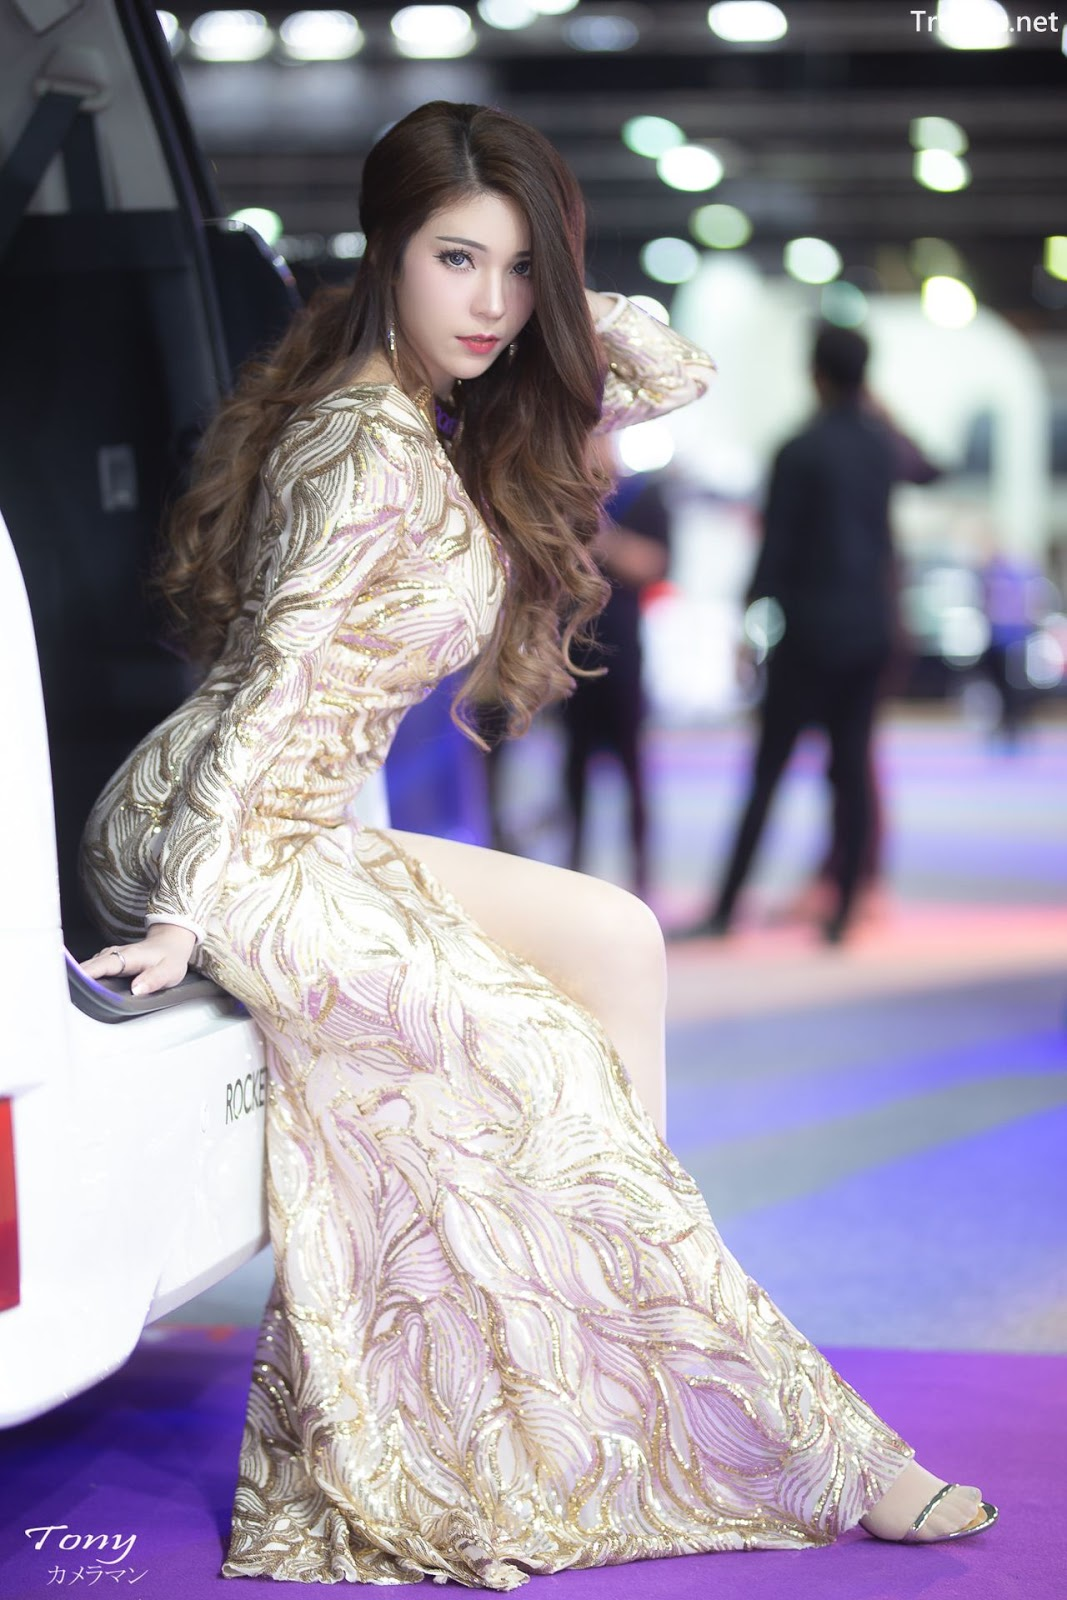 Image-Thailand-Hot-Model-Thai-Racing-Girl-At-Motor-Expo-2018-TruePic.net- Picture-5